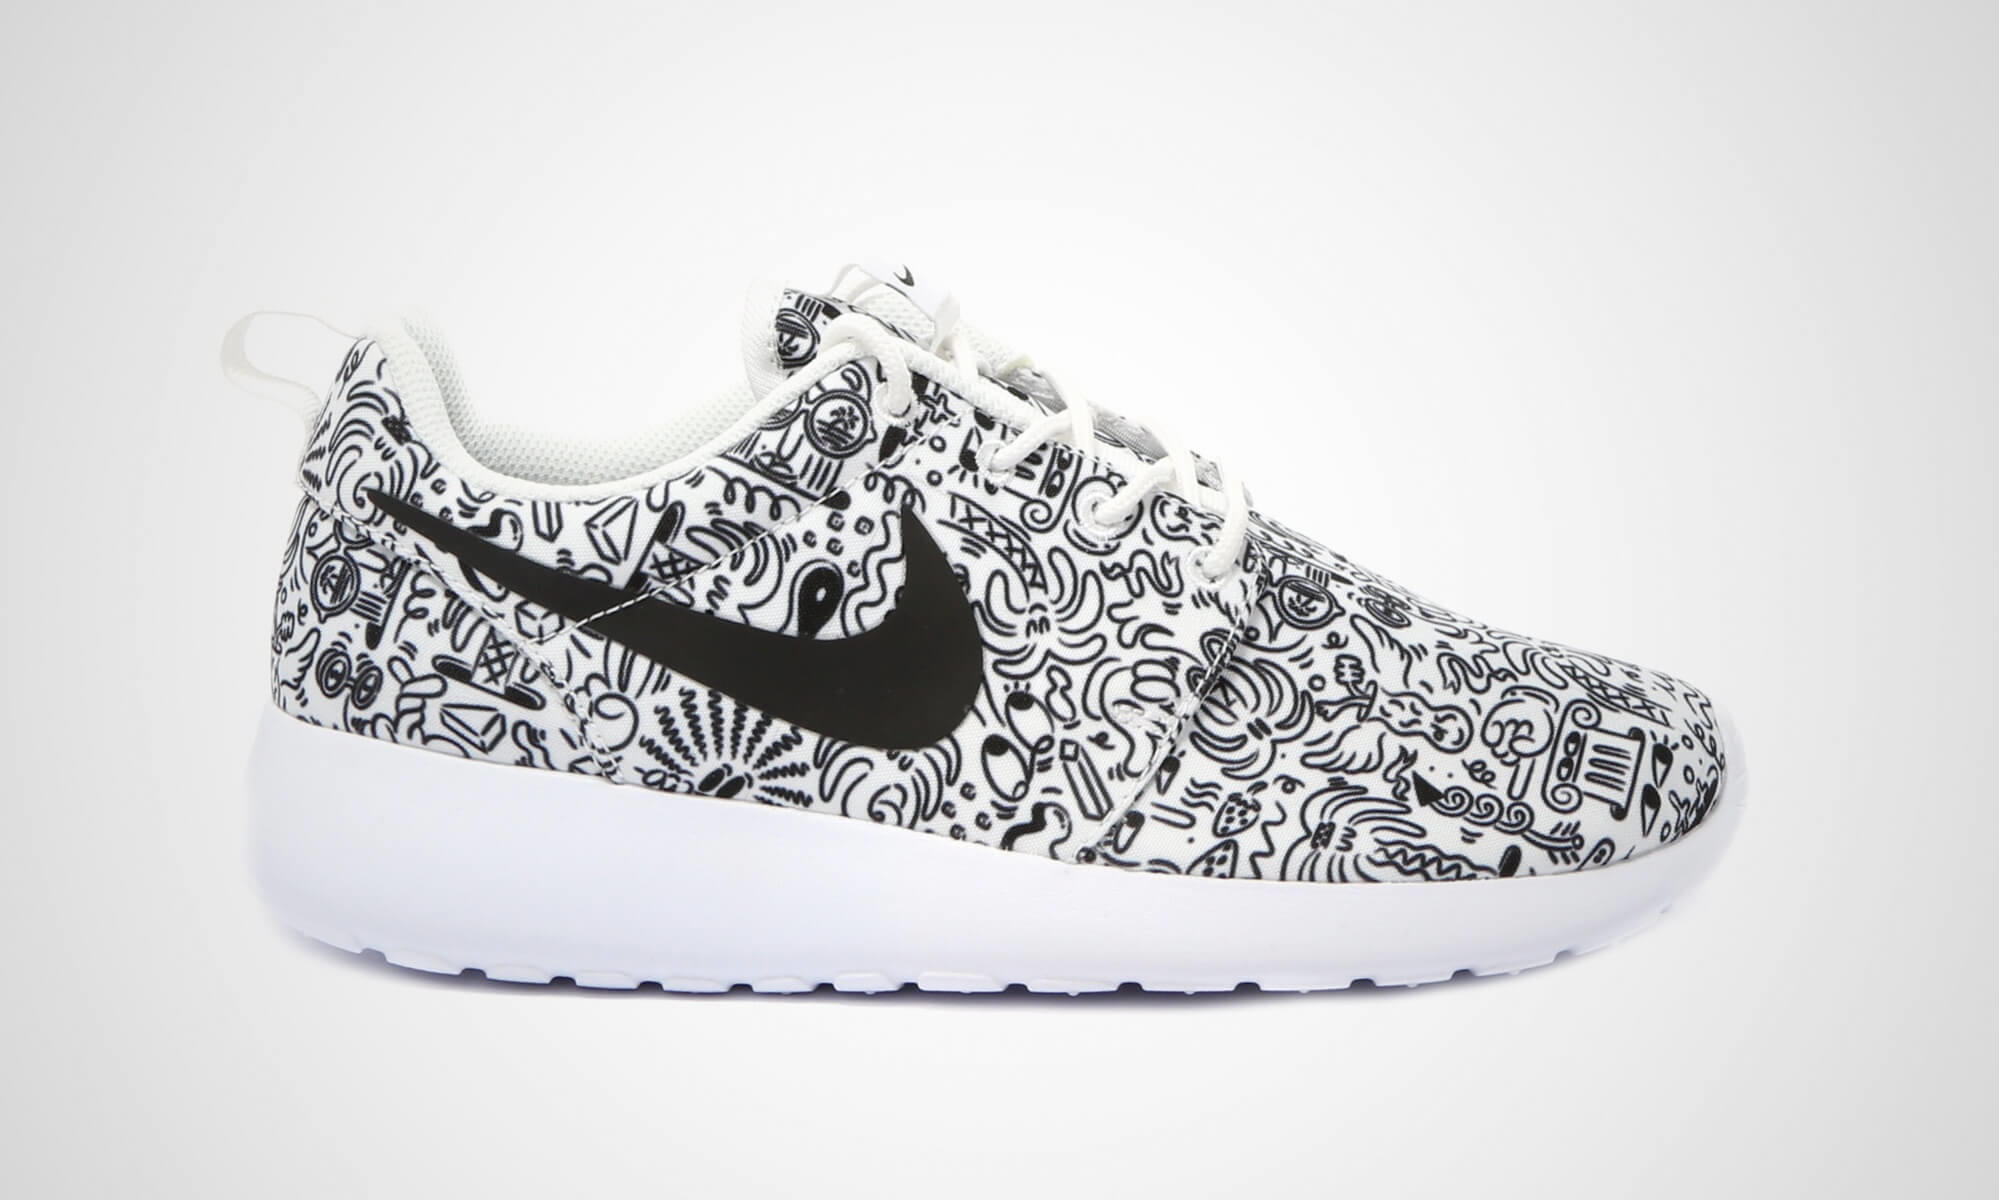 f7437bc41a060 The Nike Roshe One leaves no doubt that it s the perfect summer sneaker!  Combined is an extremely light Lunarlon-sole with a very breathable